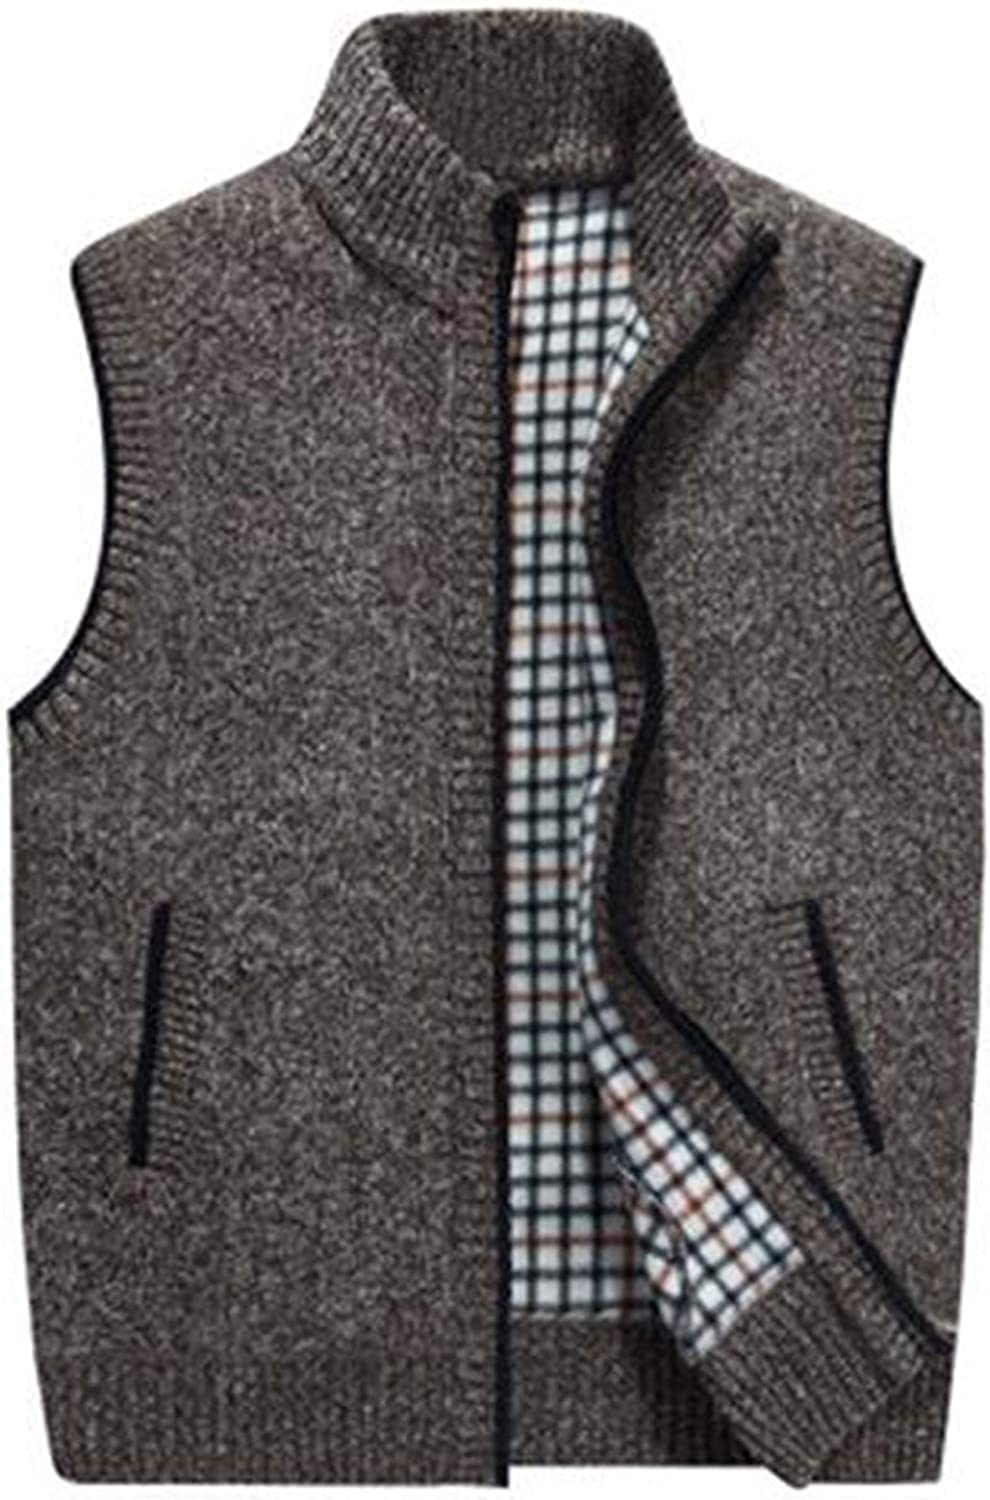 Lentta Men's Casual Classic Zipper Stand Collar Sleeveless Knit Vest Gilet with Pockets